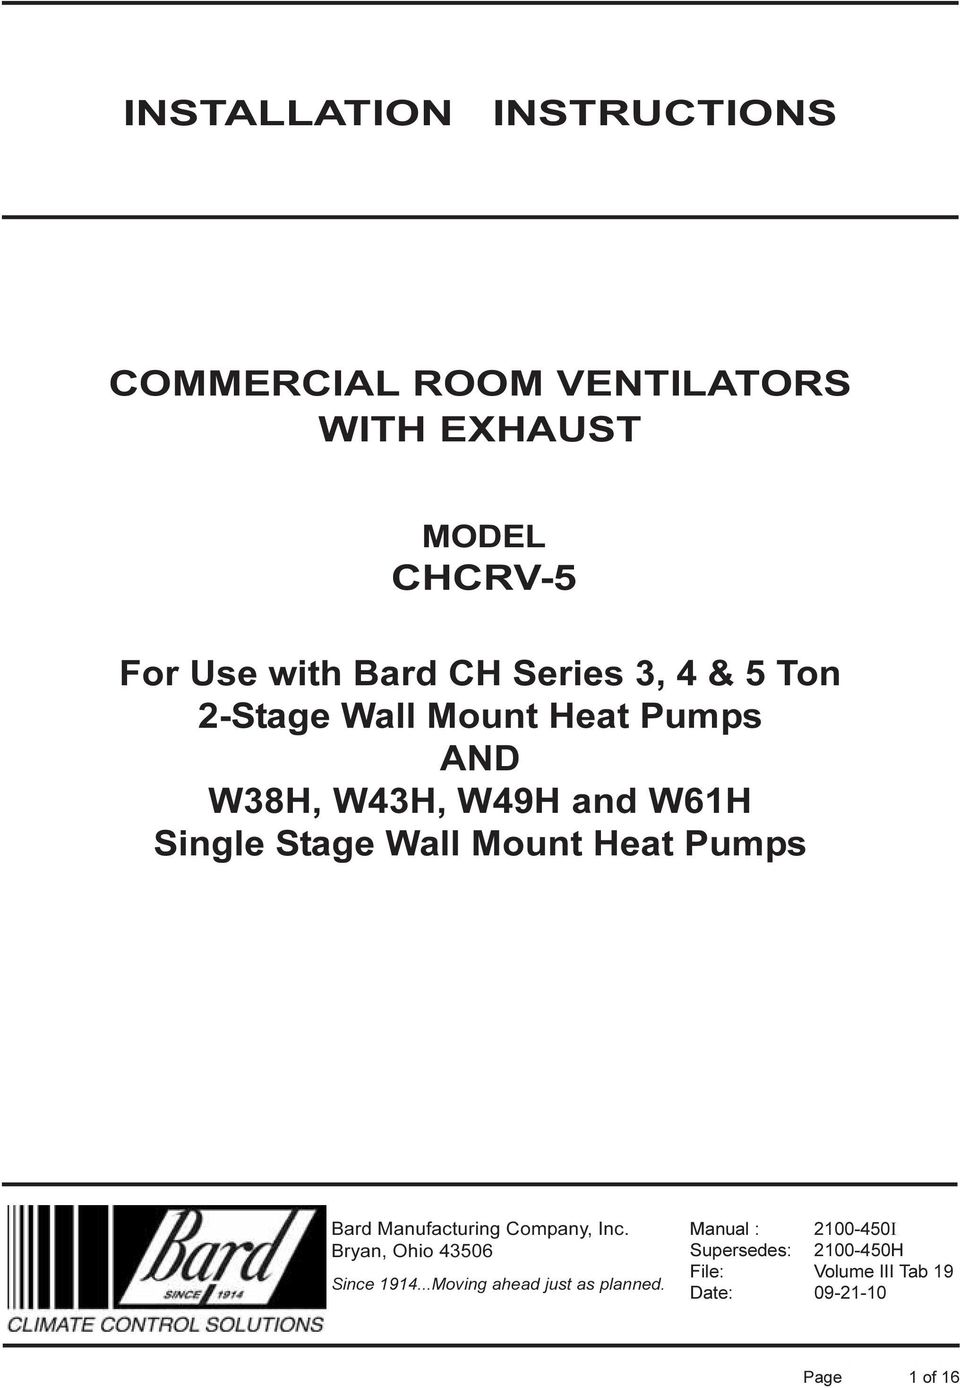 INSTALLATION INSTRUCTIONS COMMERCIAL ROOM VENTILATORS WITH